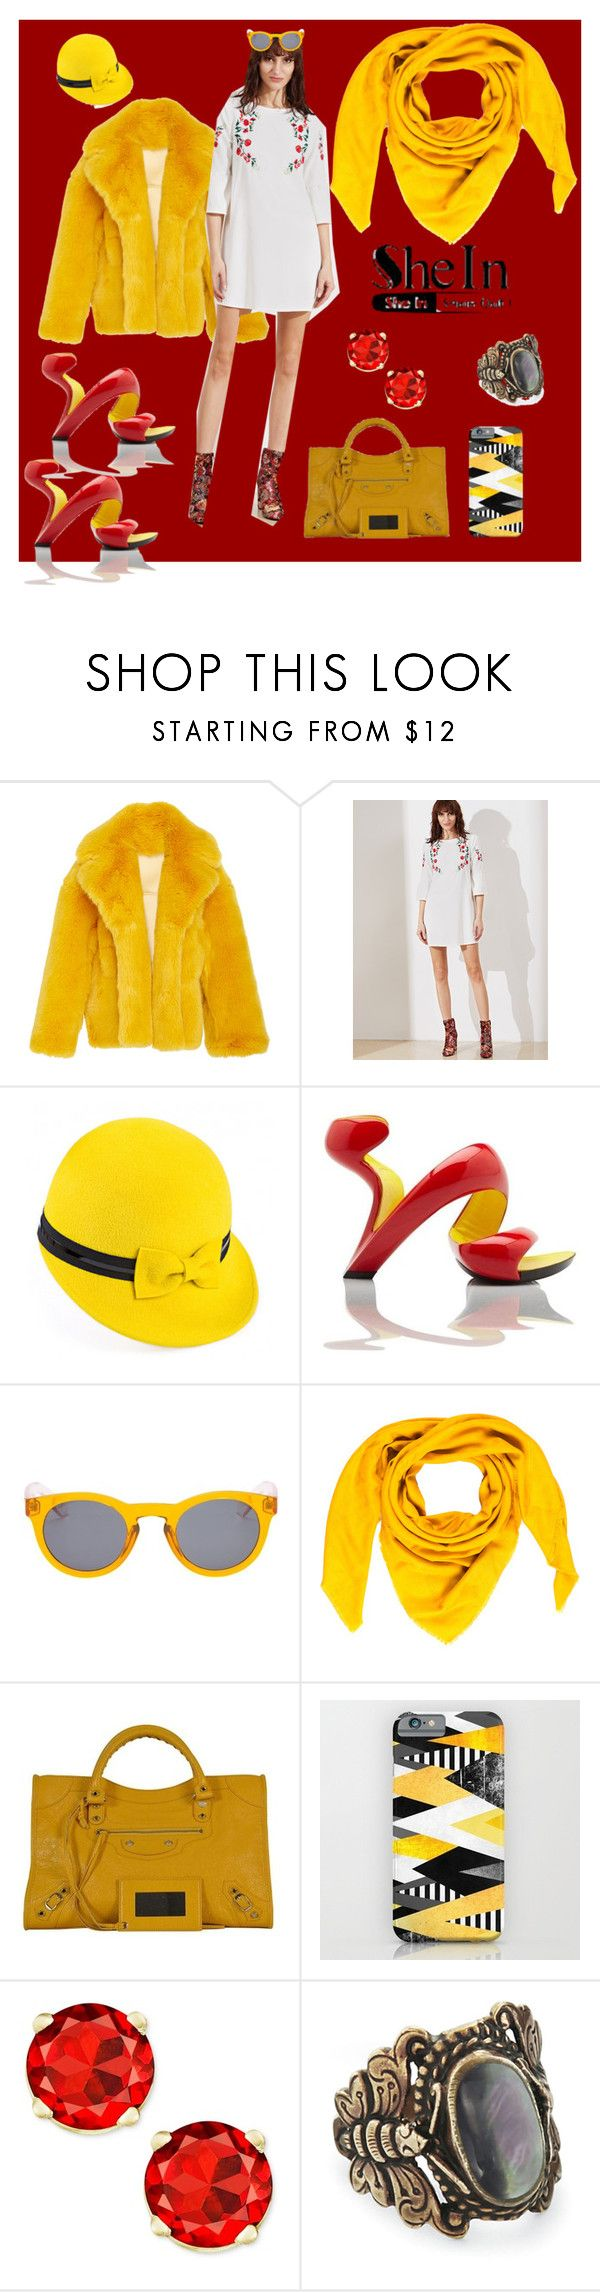 """""""Sunshine, Daisies, Buttermallow"""" by bluehatter ❤ liked on Polyvore featuring Mademoiselle Slassi, Vans, Goyard and Balenciaga"""